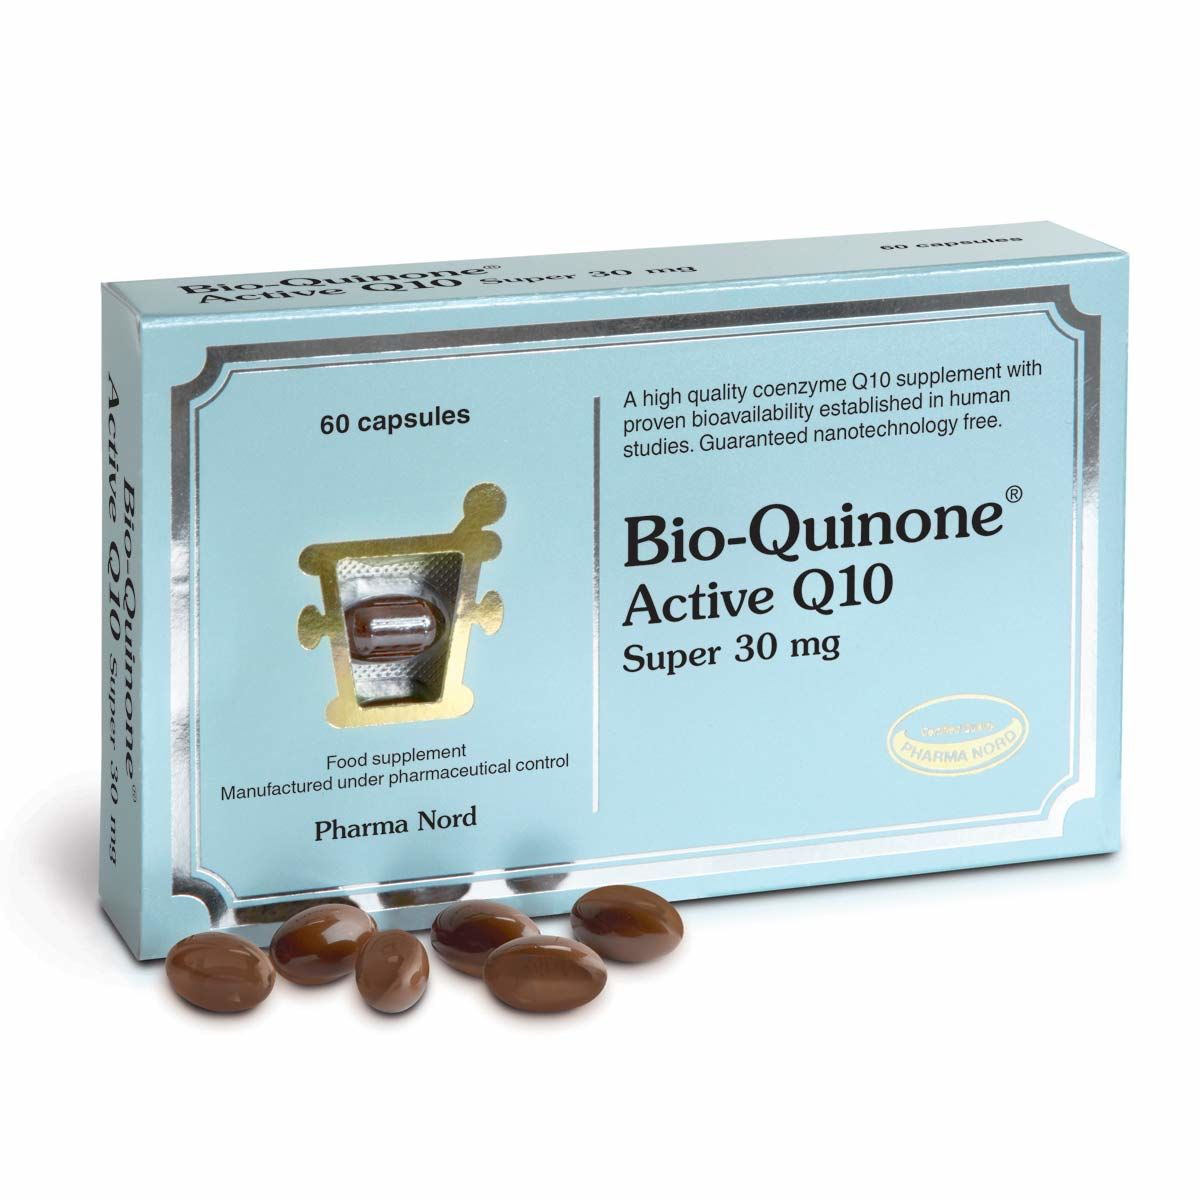 Bio-Quinone Active Q10 100mg 60 Tablets